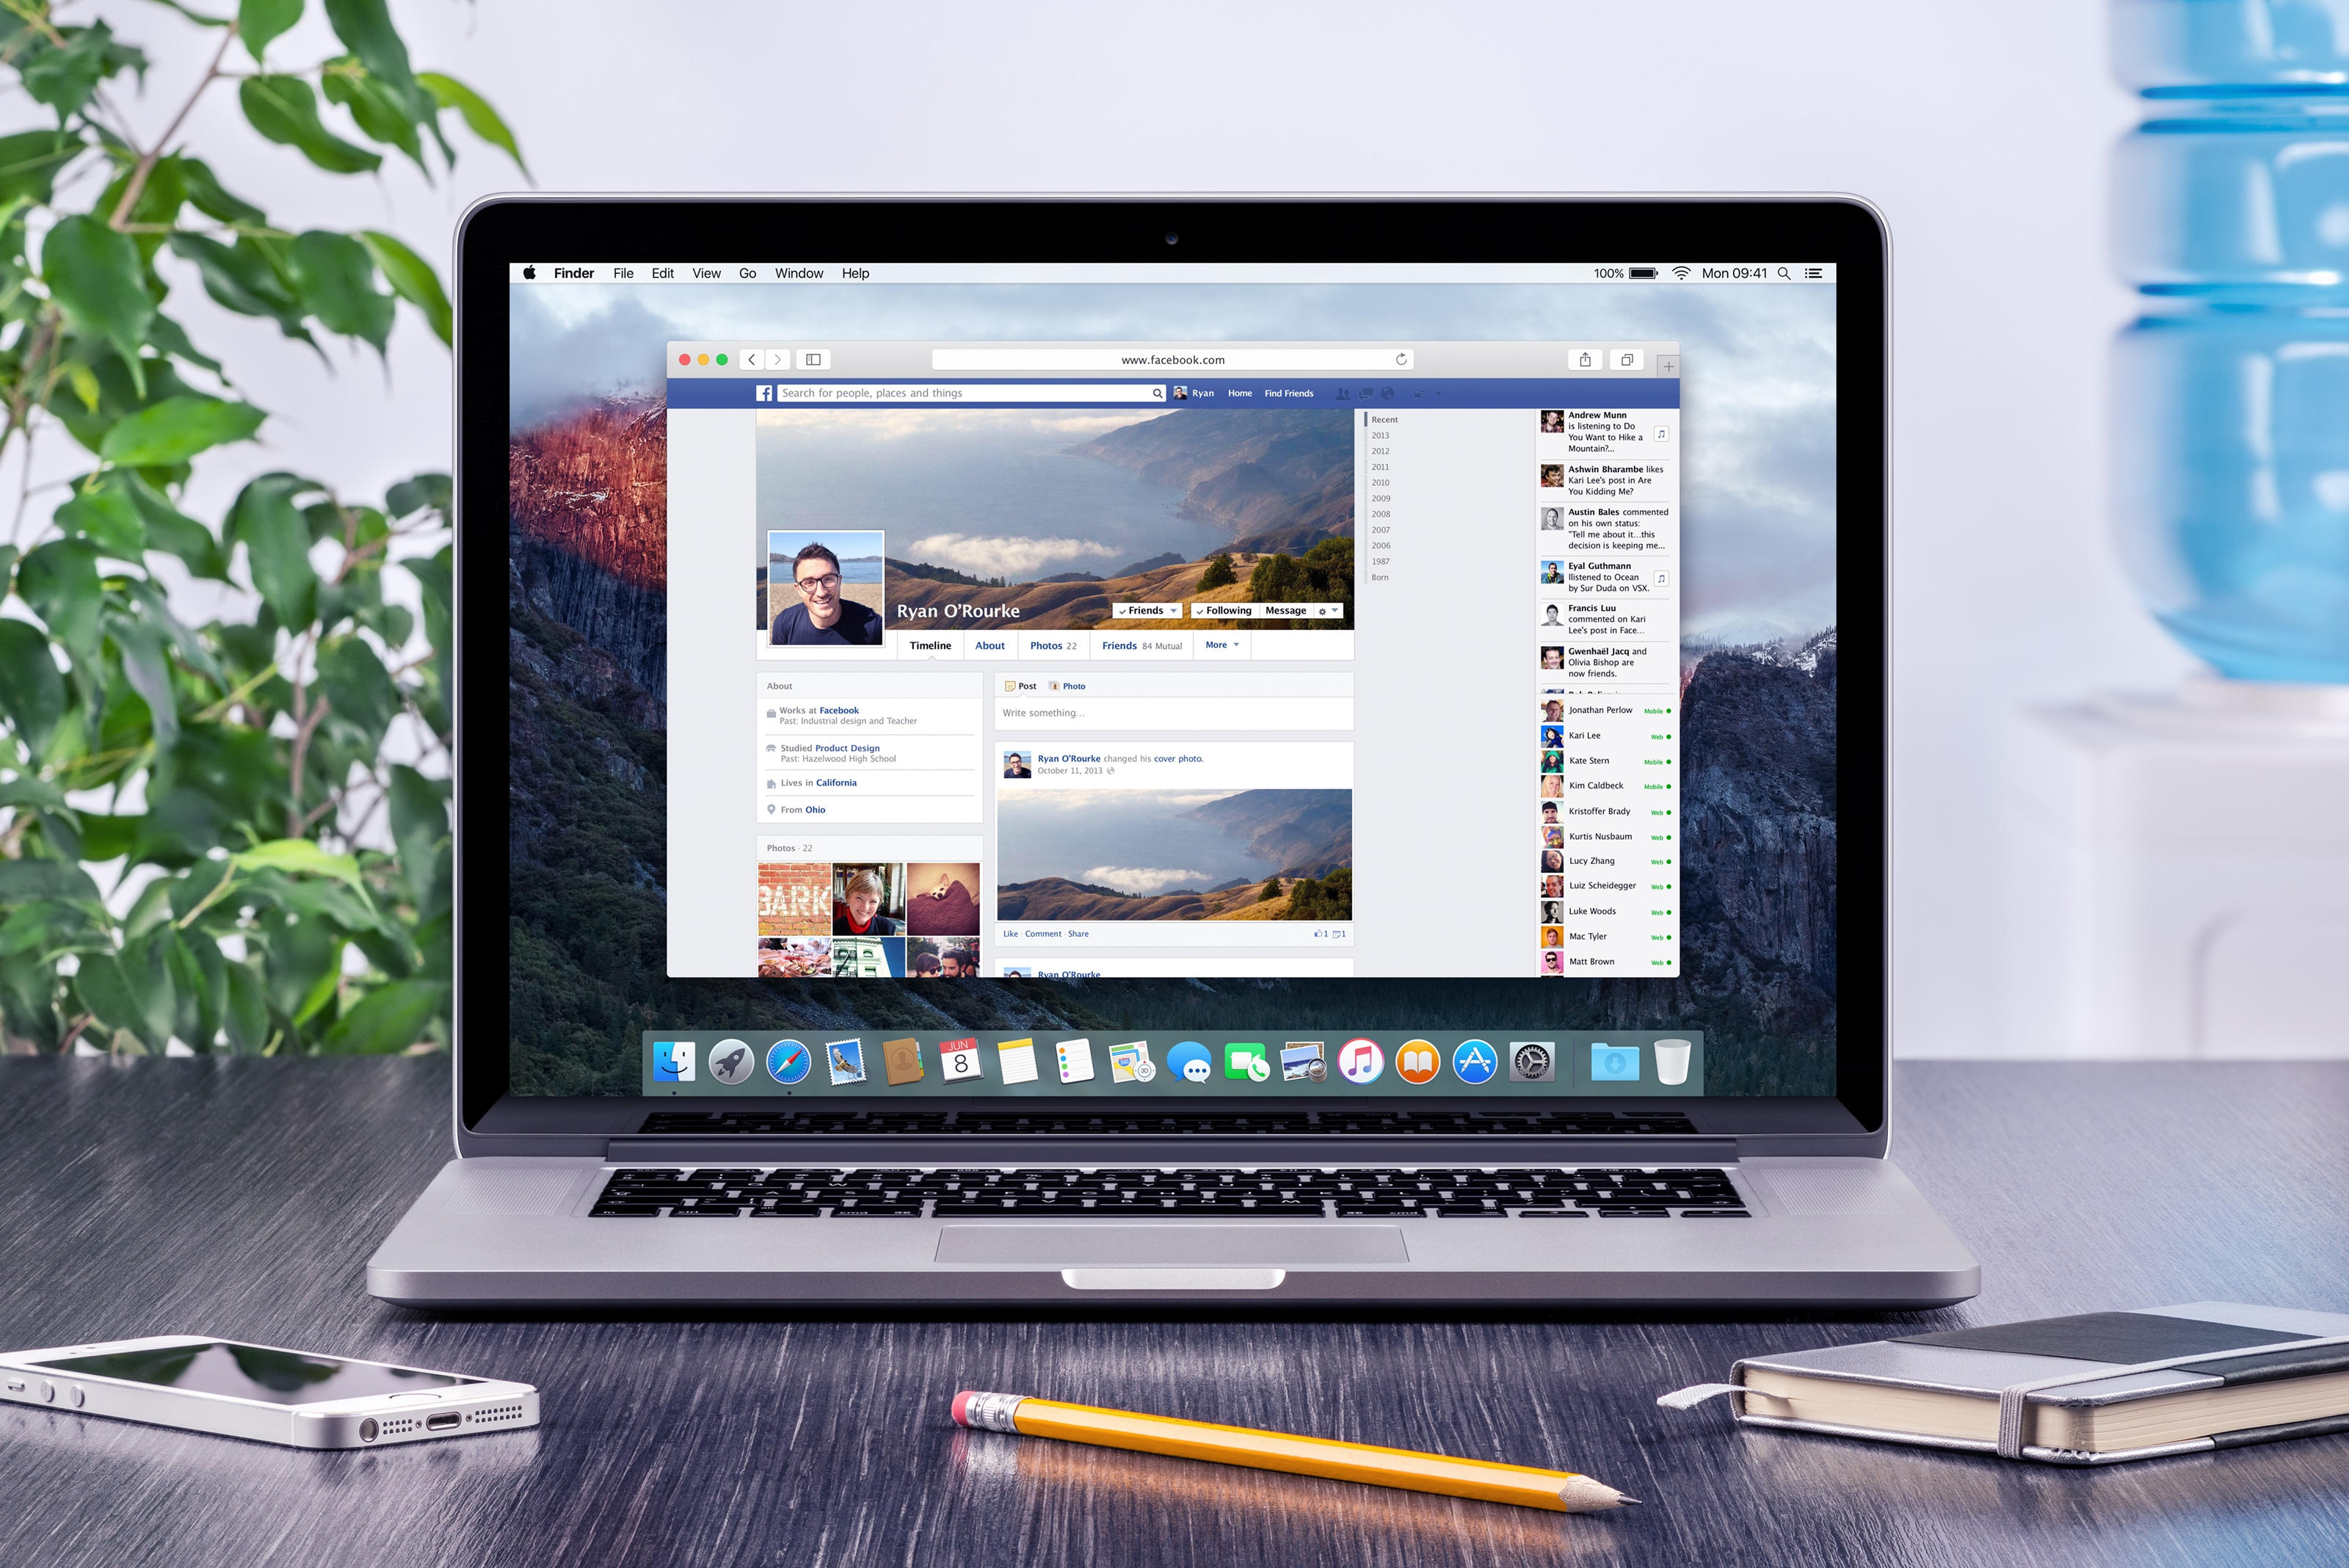 Facebook aberto num MacBook Pro